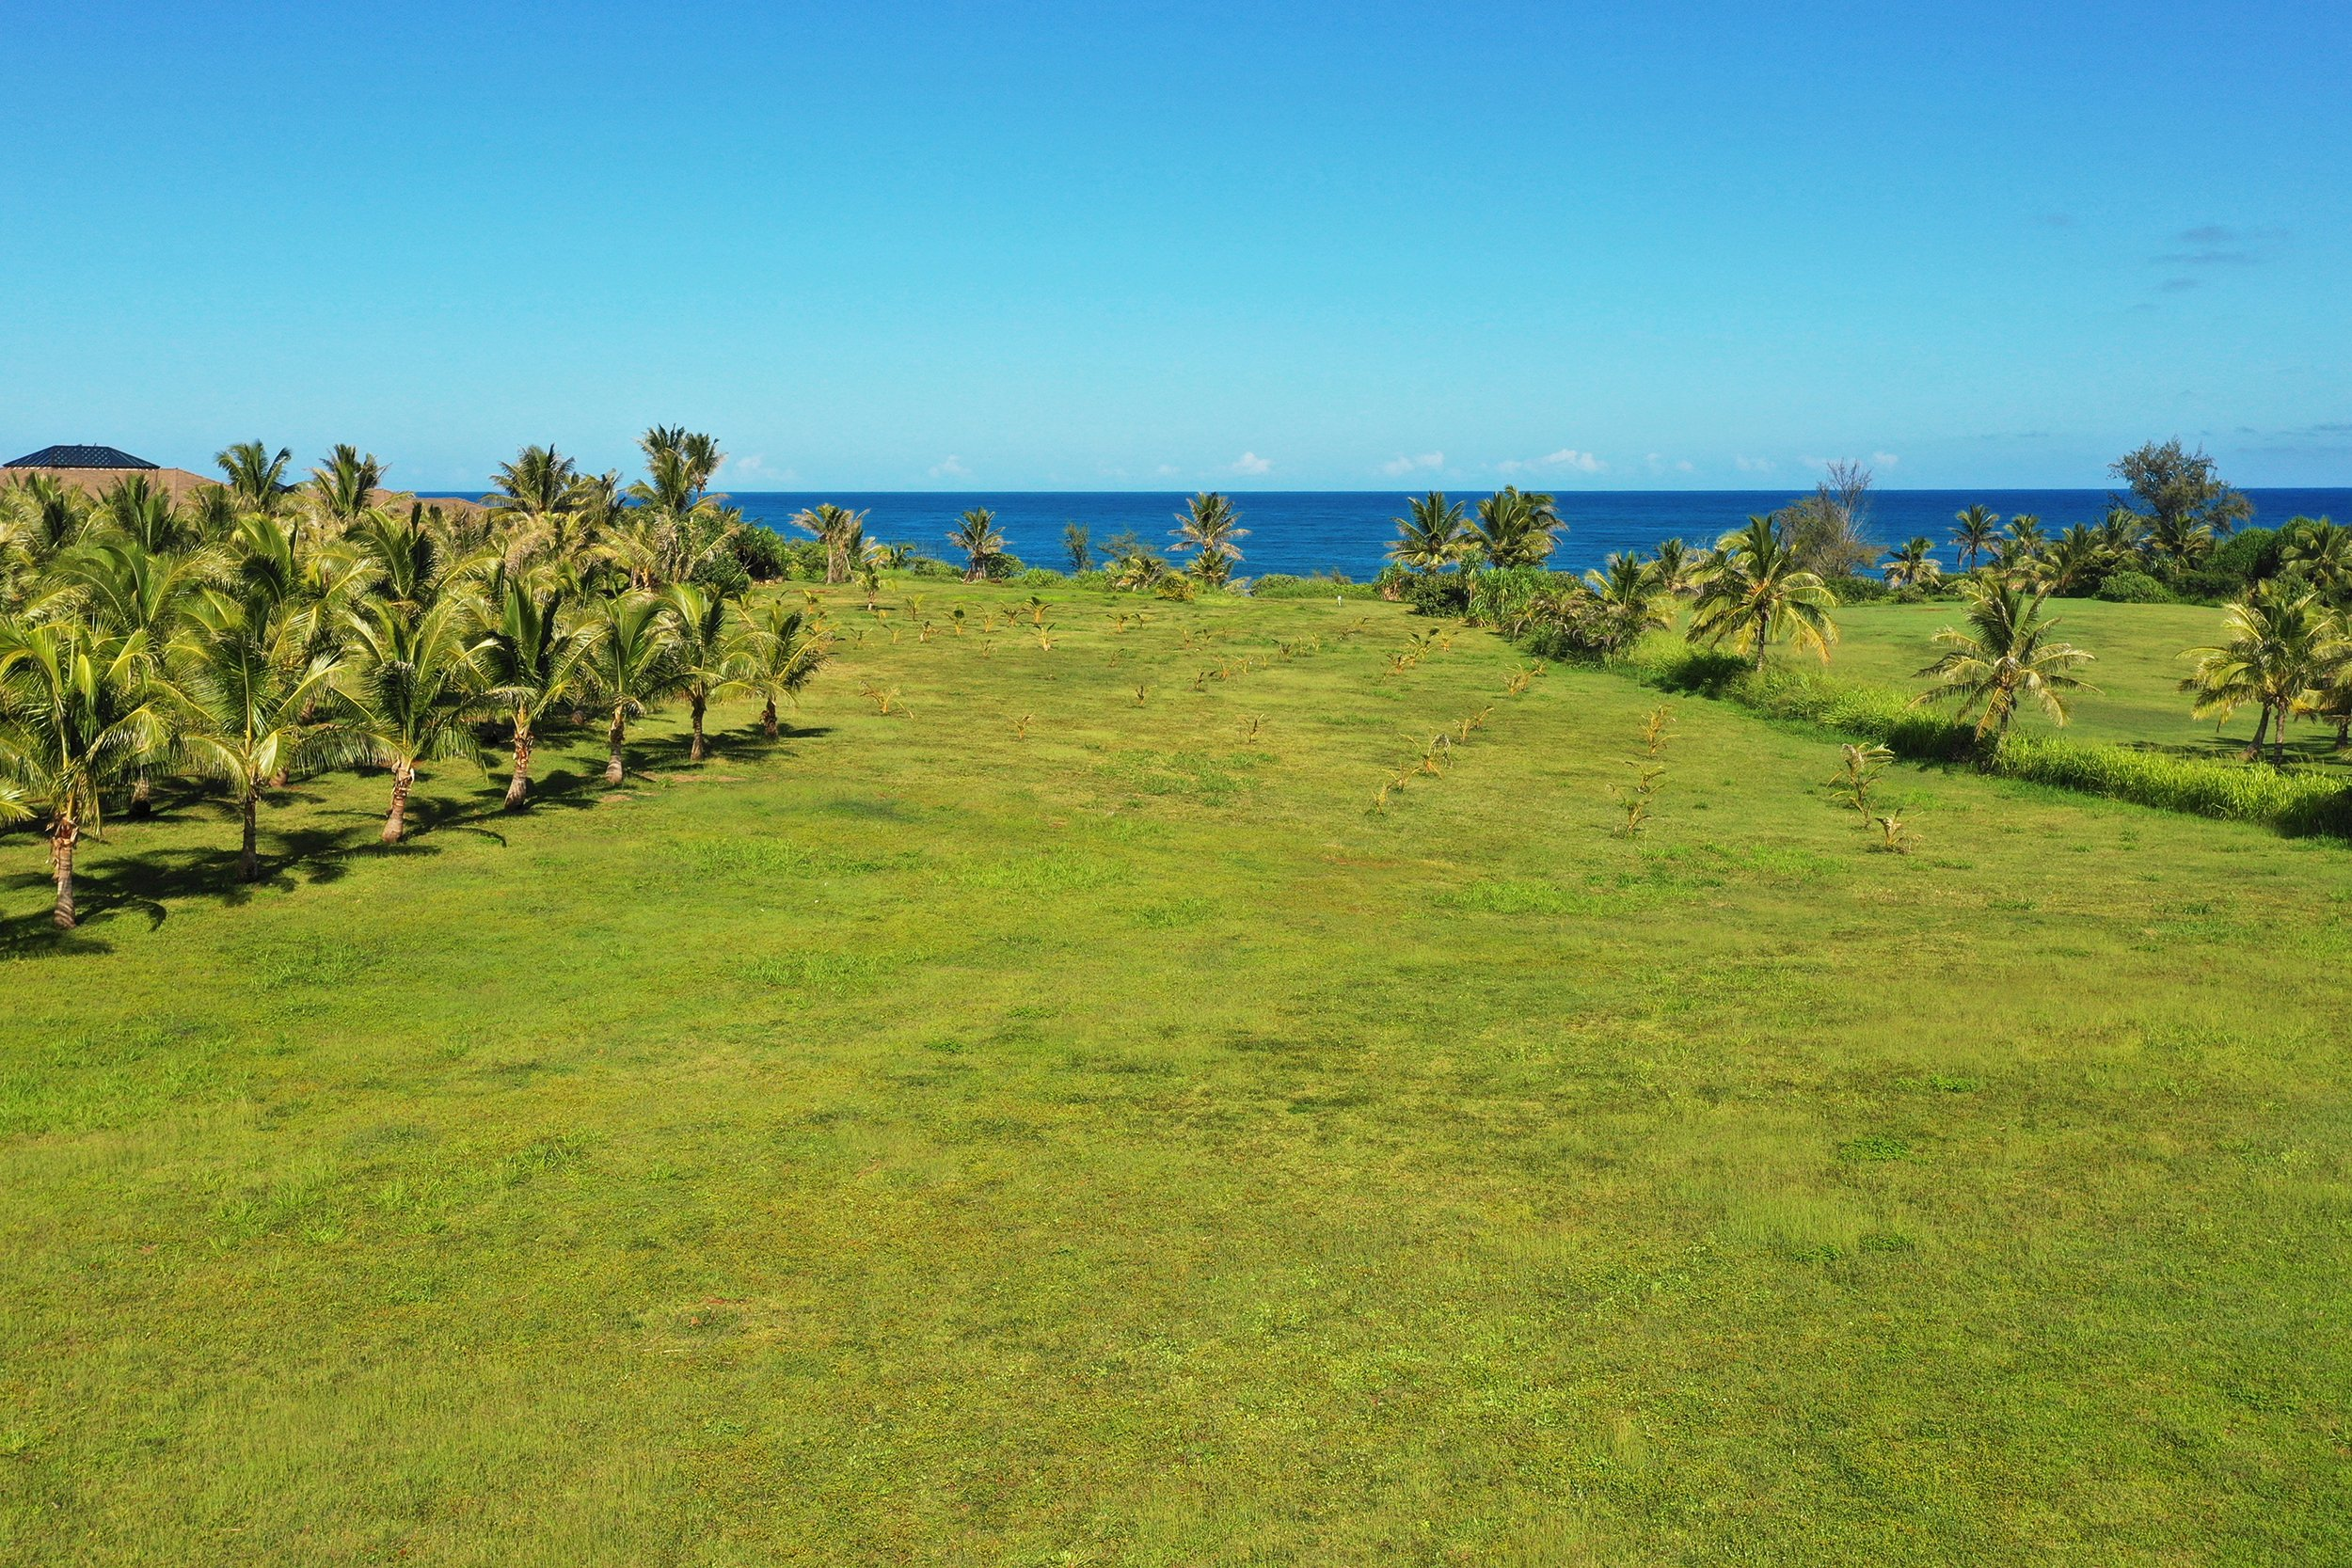 Land view of lot 18 of Kealia Kai on Kauai - Project Broker is Hannah Sirois